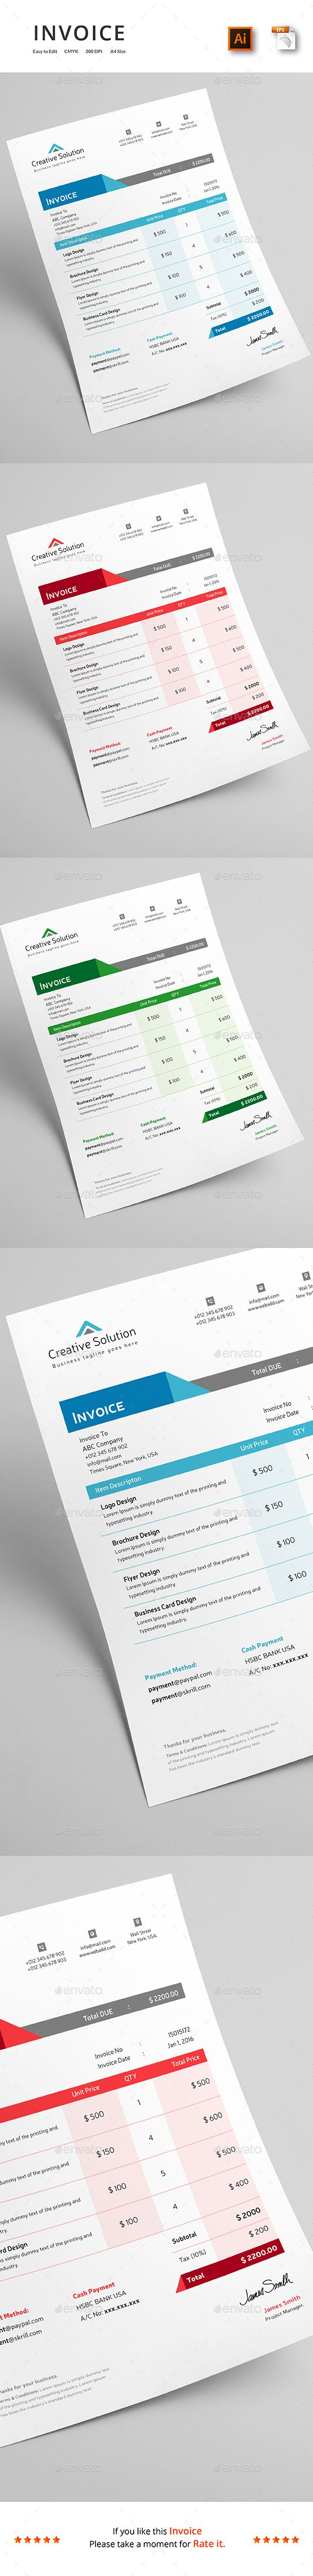 1000 ideas about invoice template on pinterest business for Https invoice generator com 1